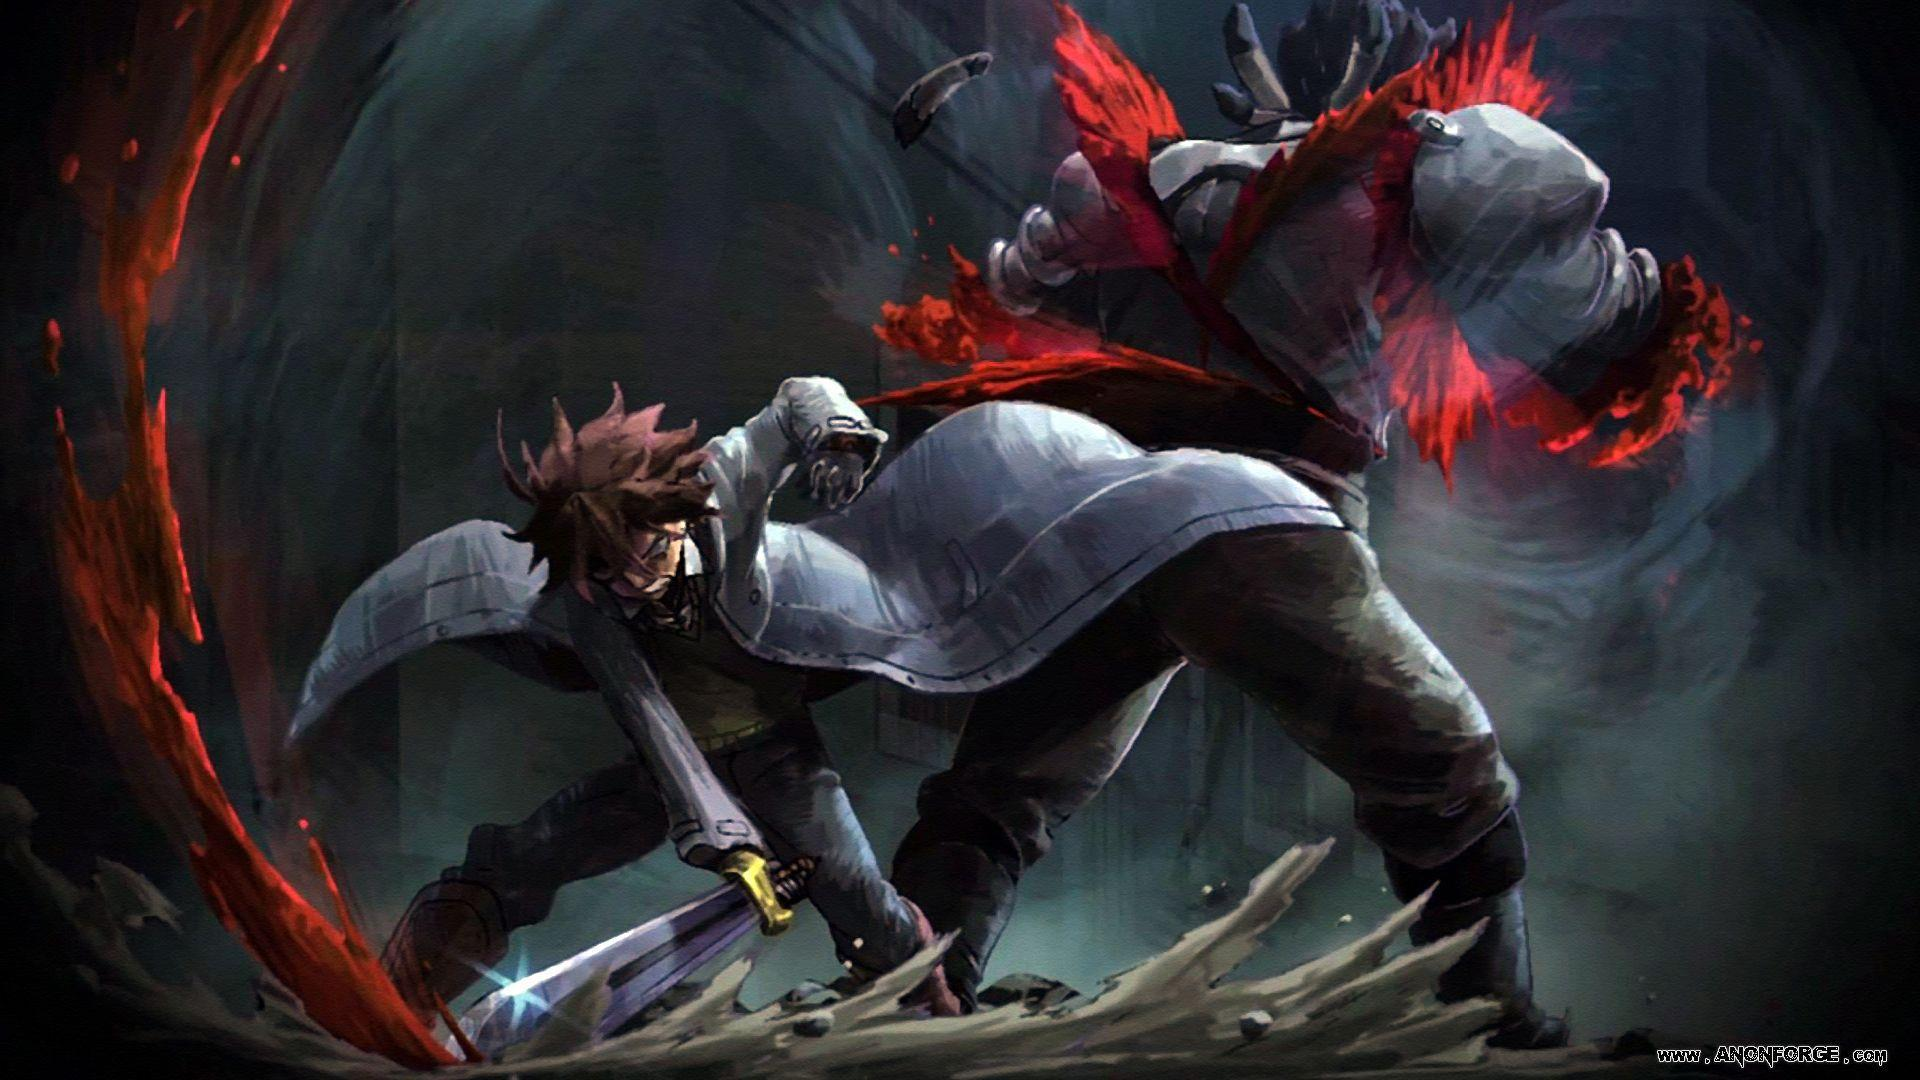 Anime Fight Wallpapers - Wallpaper Cave